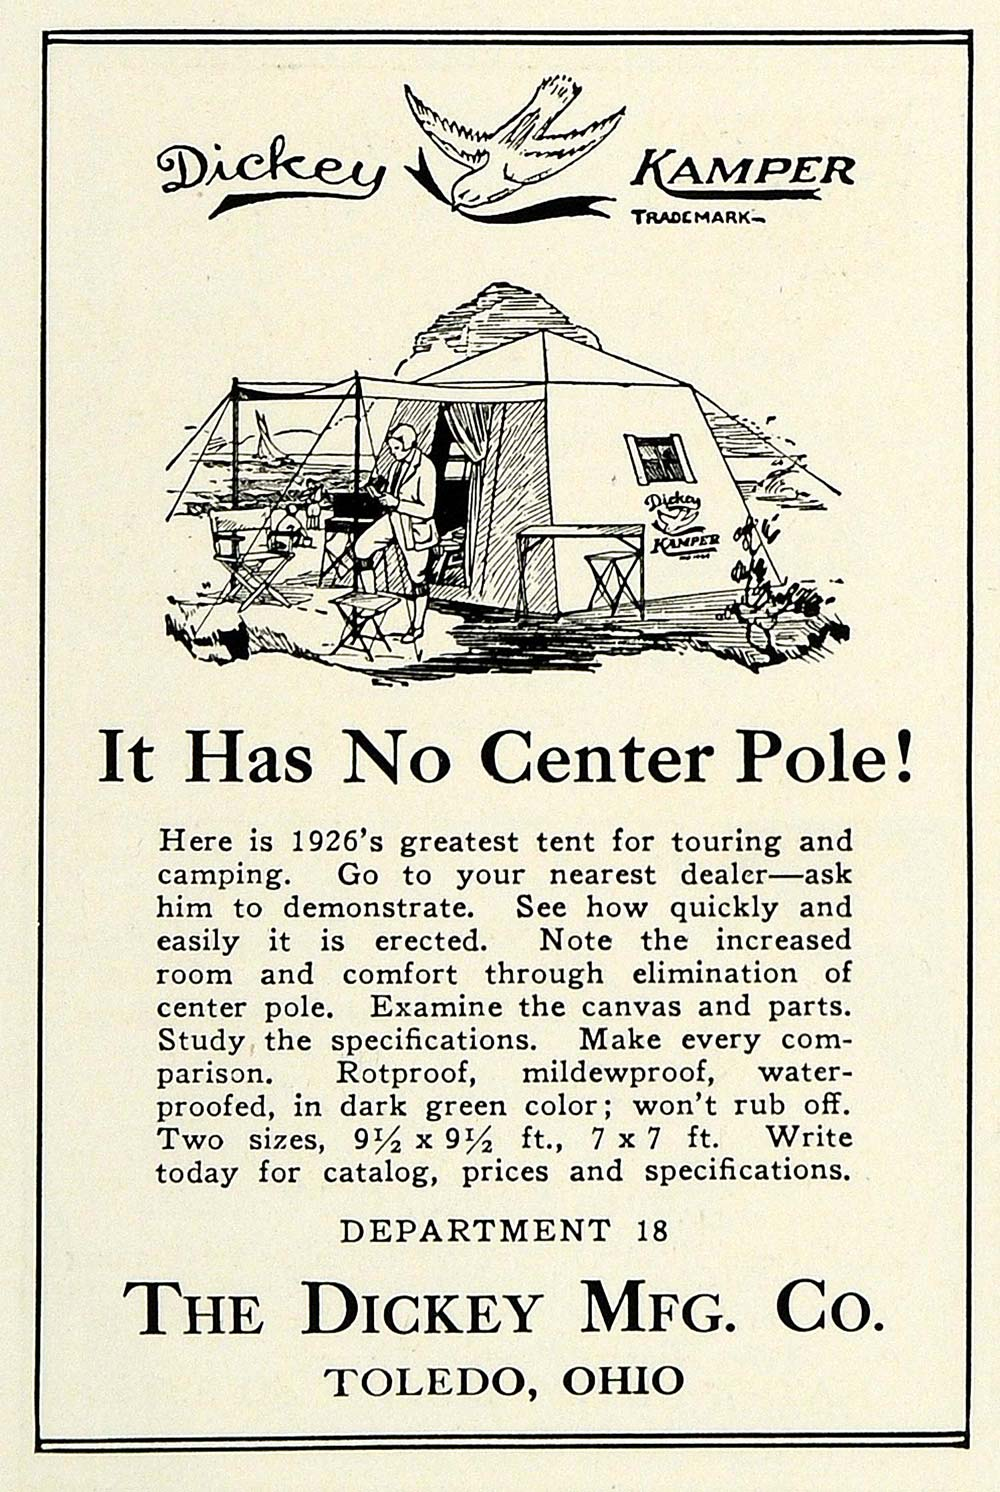 1926 Ad Dickey Mfg Co Toledo Kamper Camping Tent Equipment Accessories NGM1